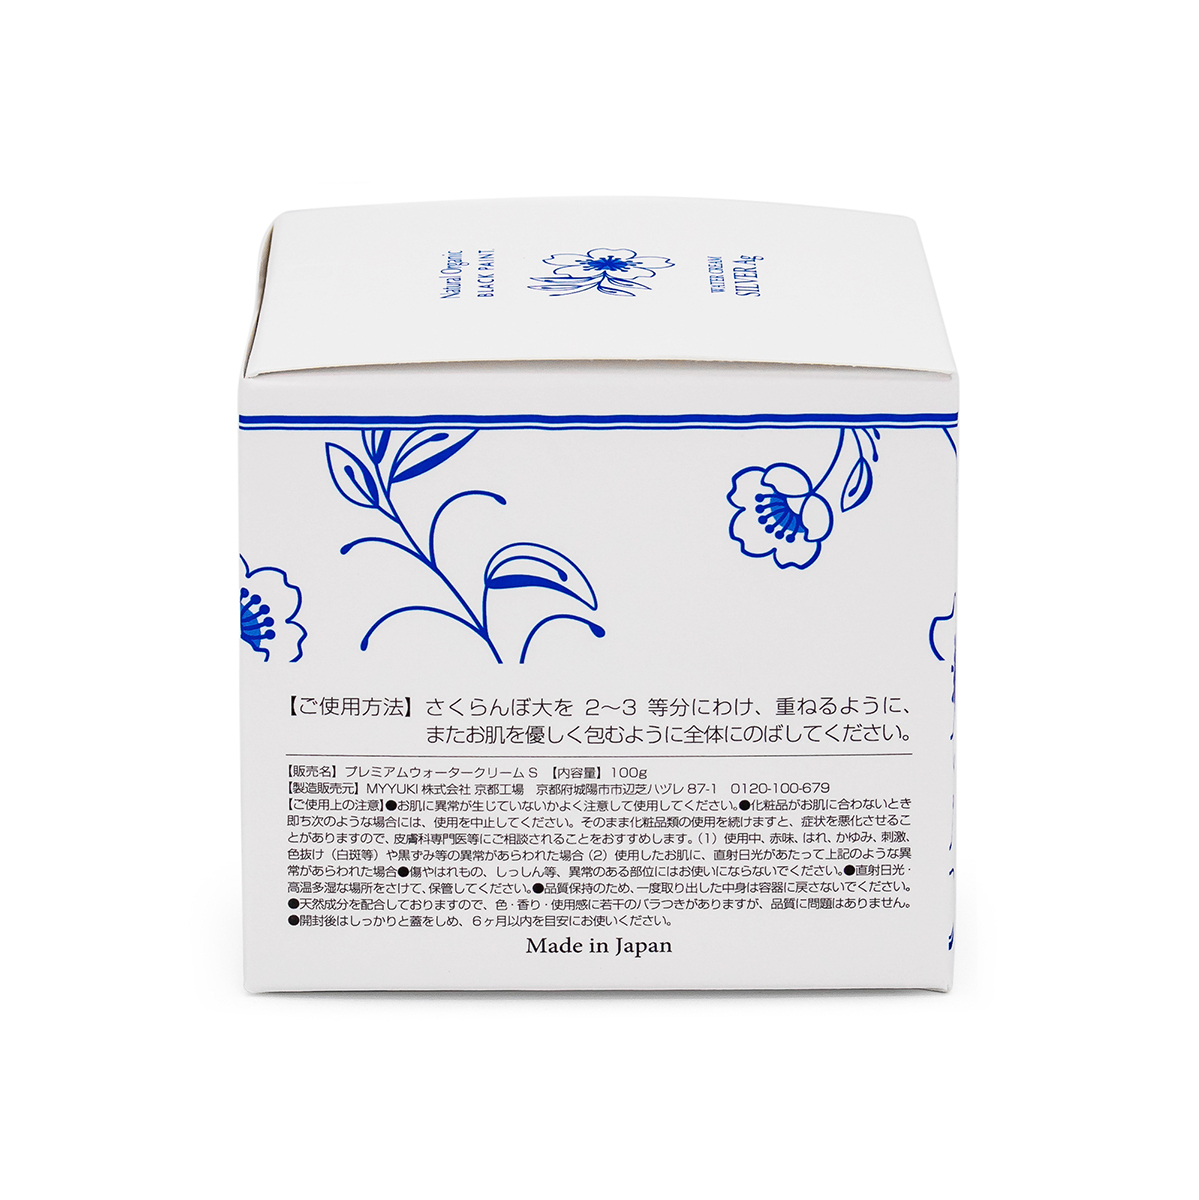 Water Cream Silver 100g with Human Microbiome - box side 3